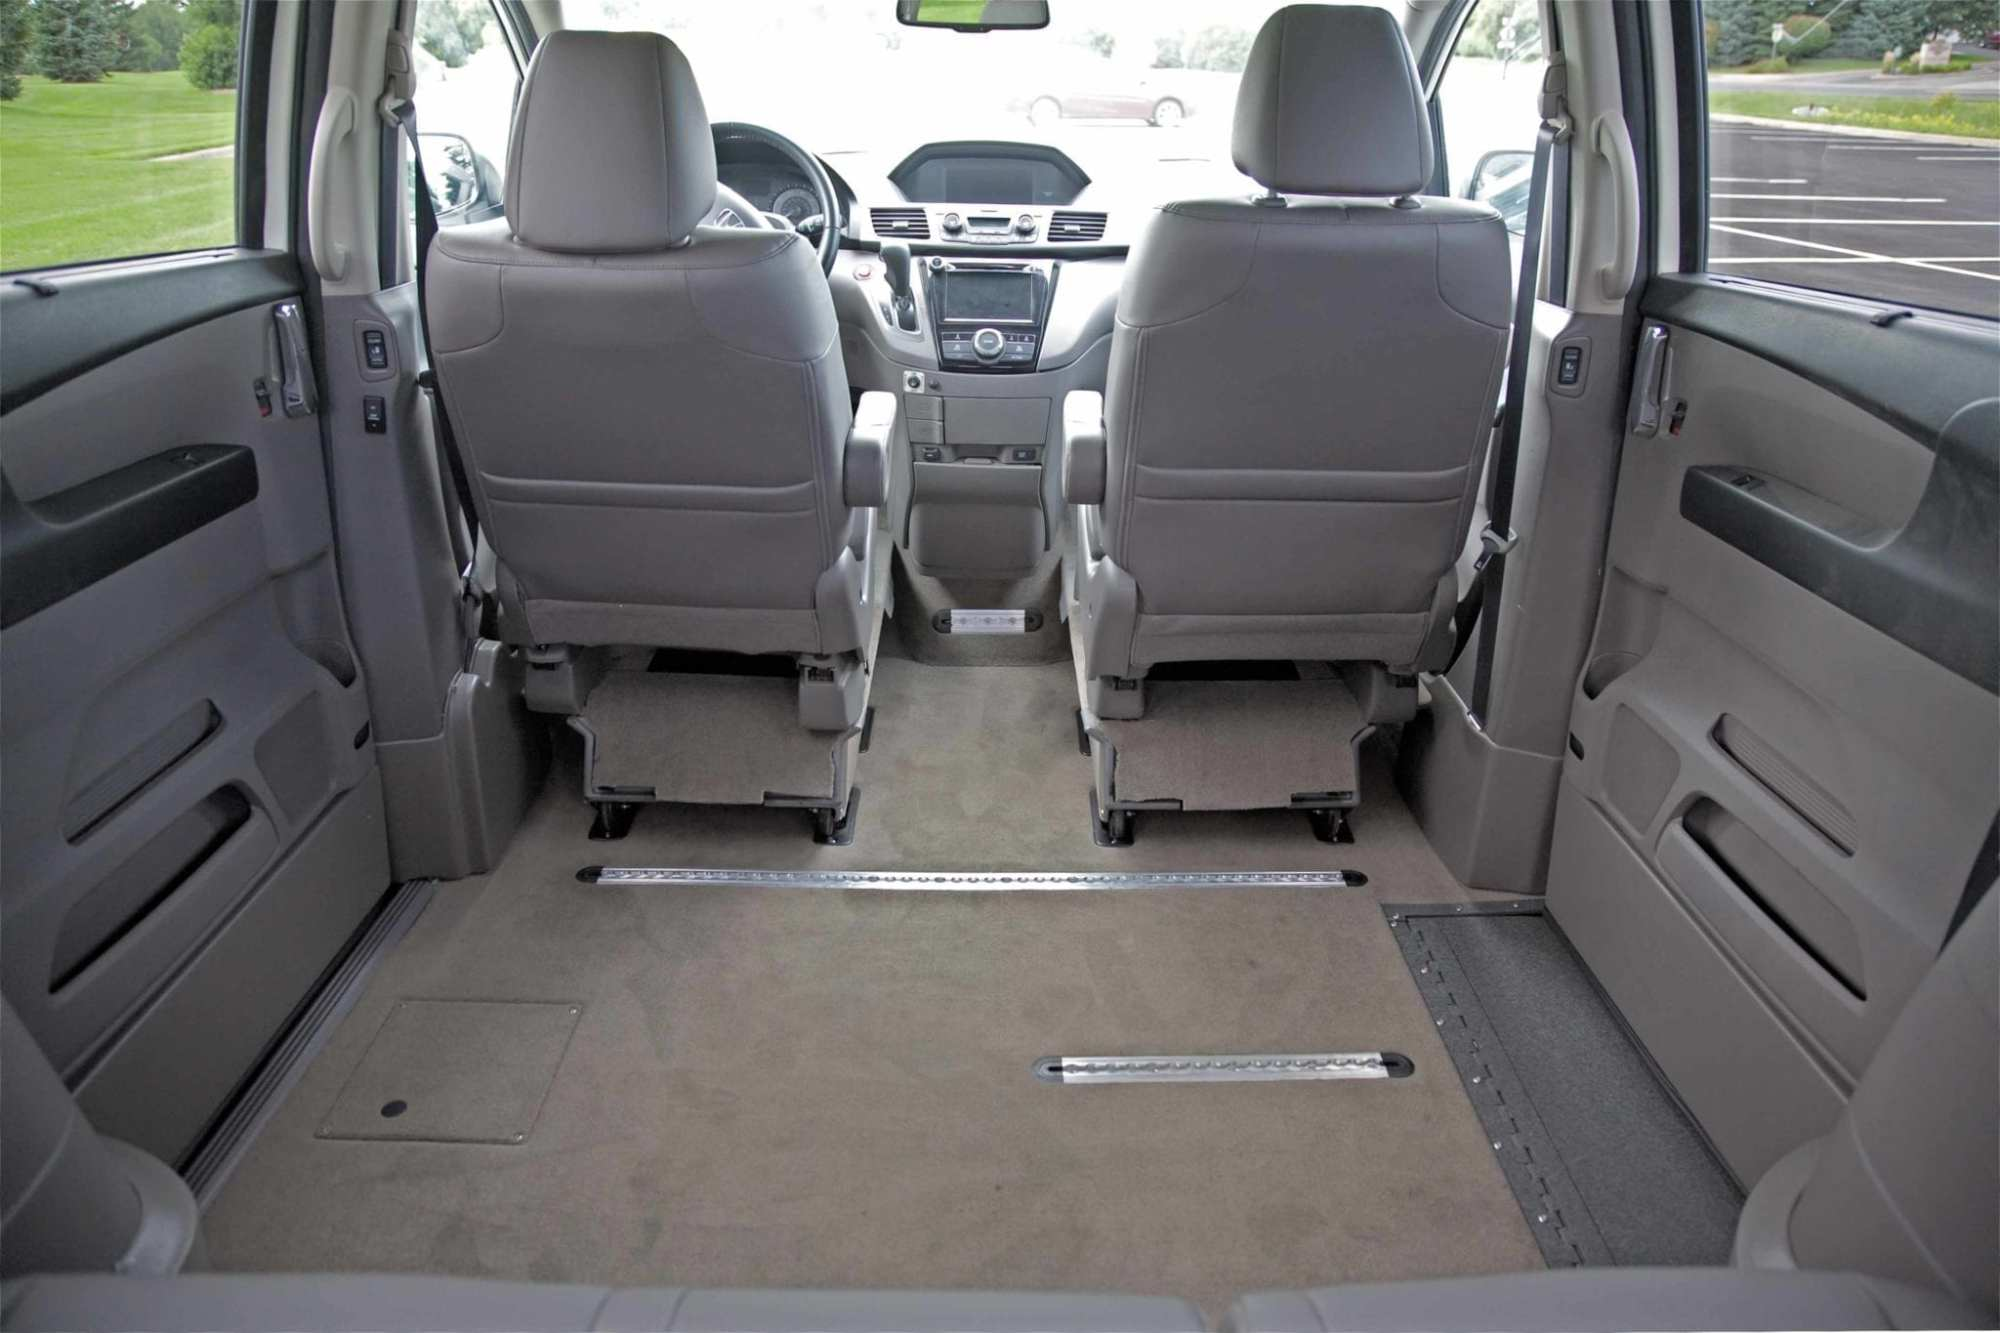 hight resolution of there are a lot of similarities in the wheelchair van industry to what you would find in the regular consumer vehicle market in that no two dealerships are